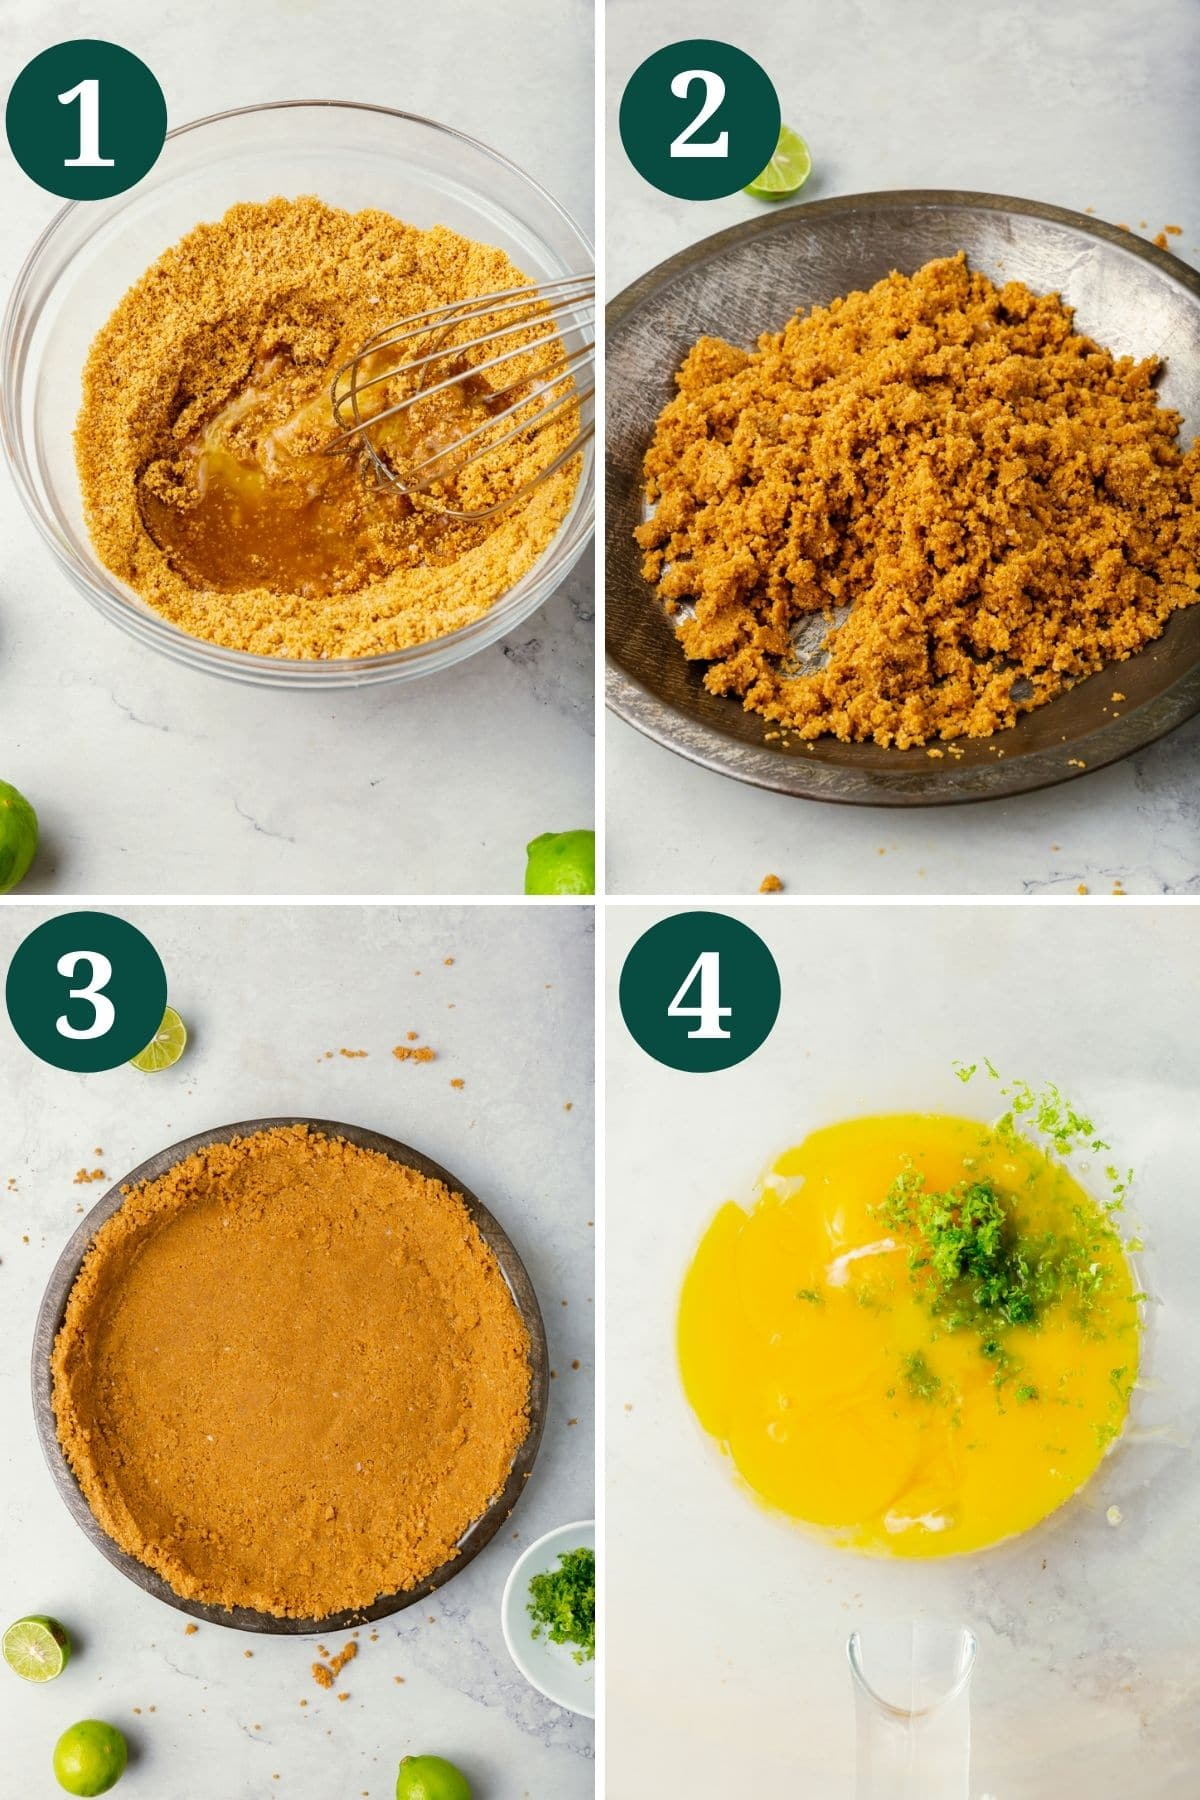 A collage showing how to make gluten-free graham cracker crust for key lime pie.